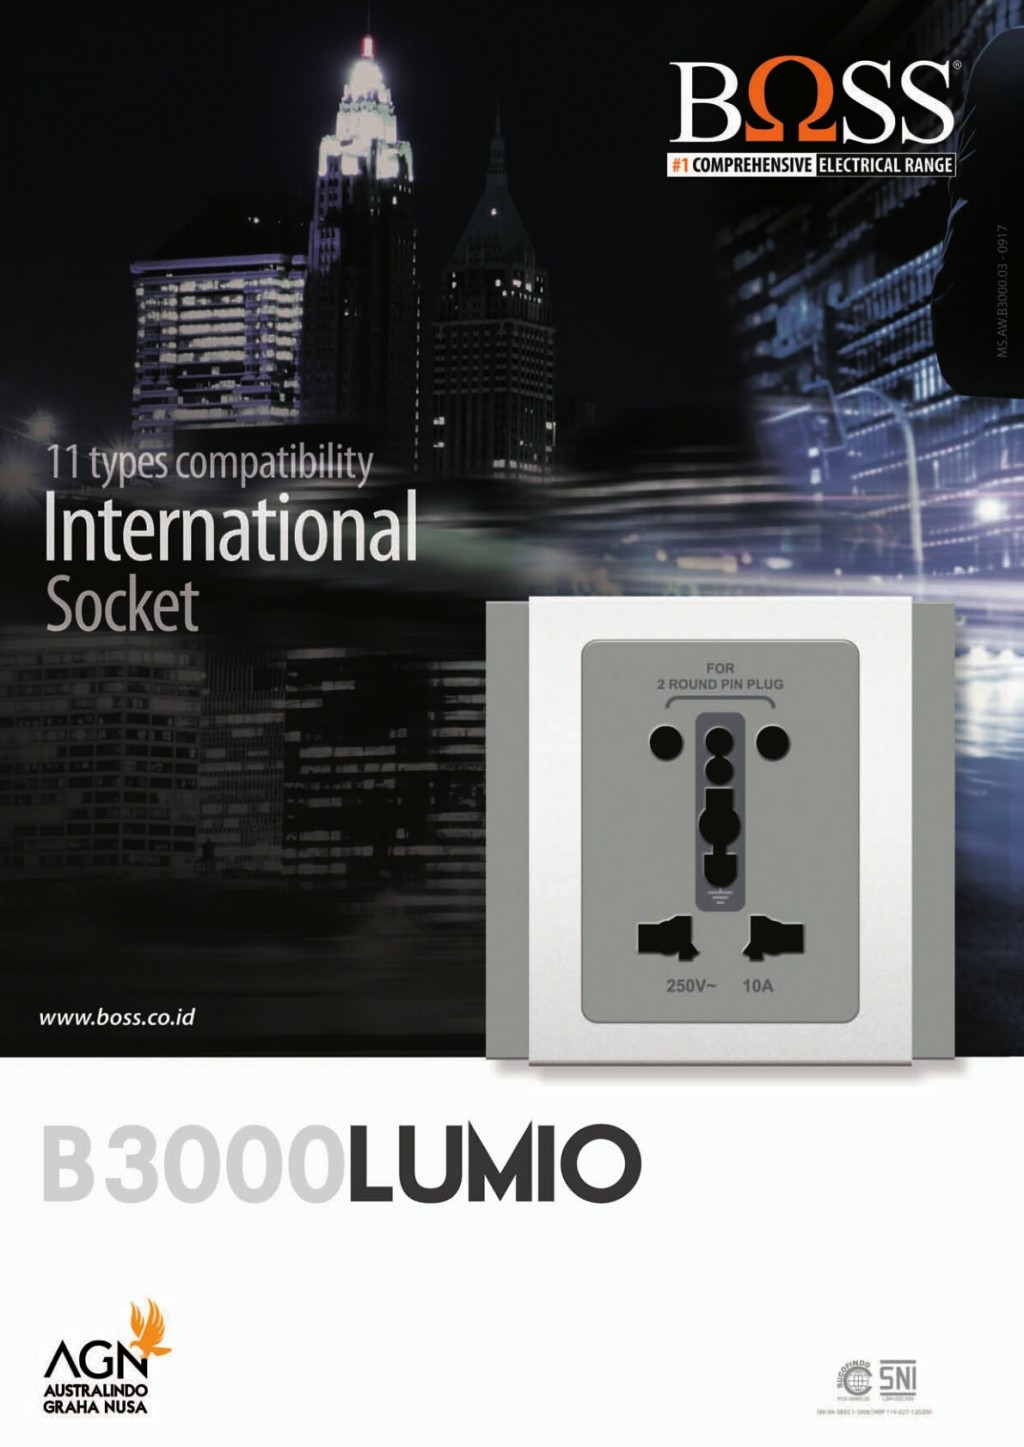 SAKLAR & STOP KONTAK, BOSS B3000 LUMIO - Switch with LED Indicator, B3000 LUMIO